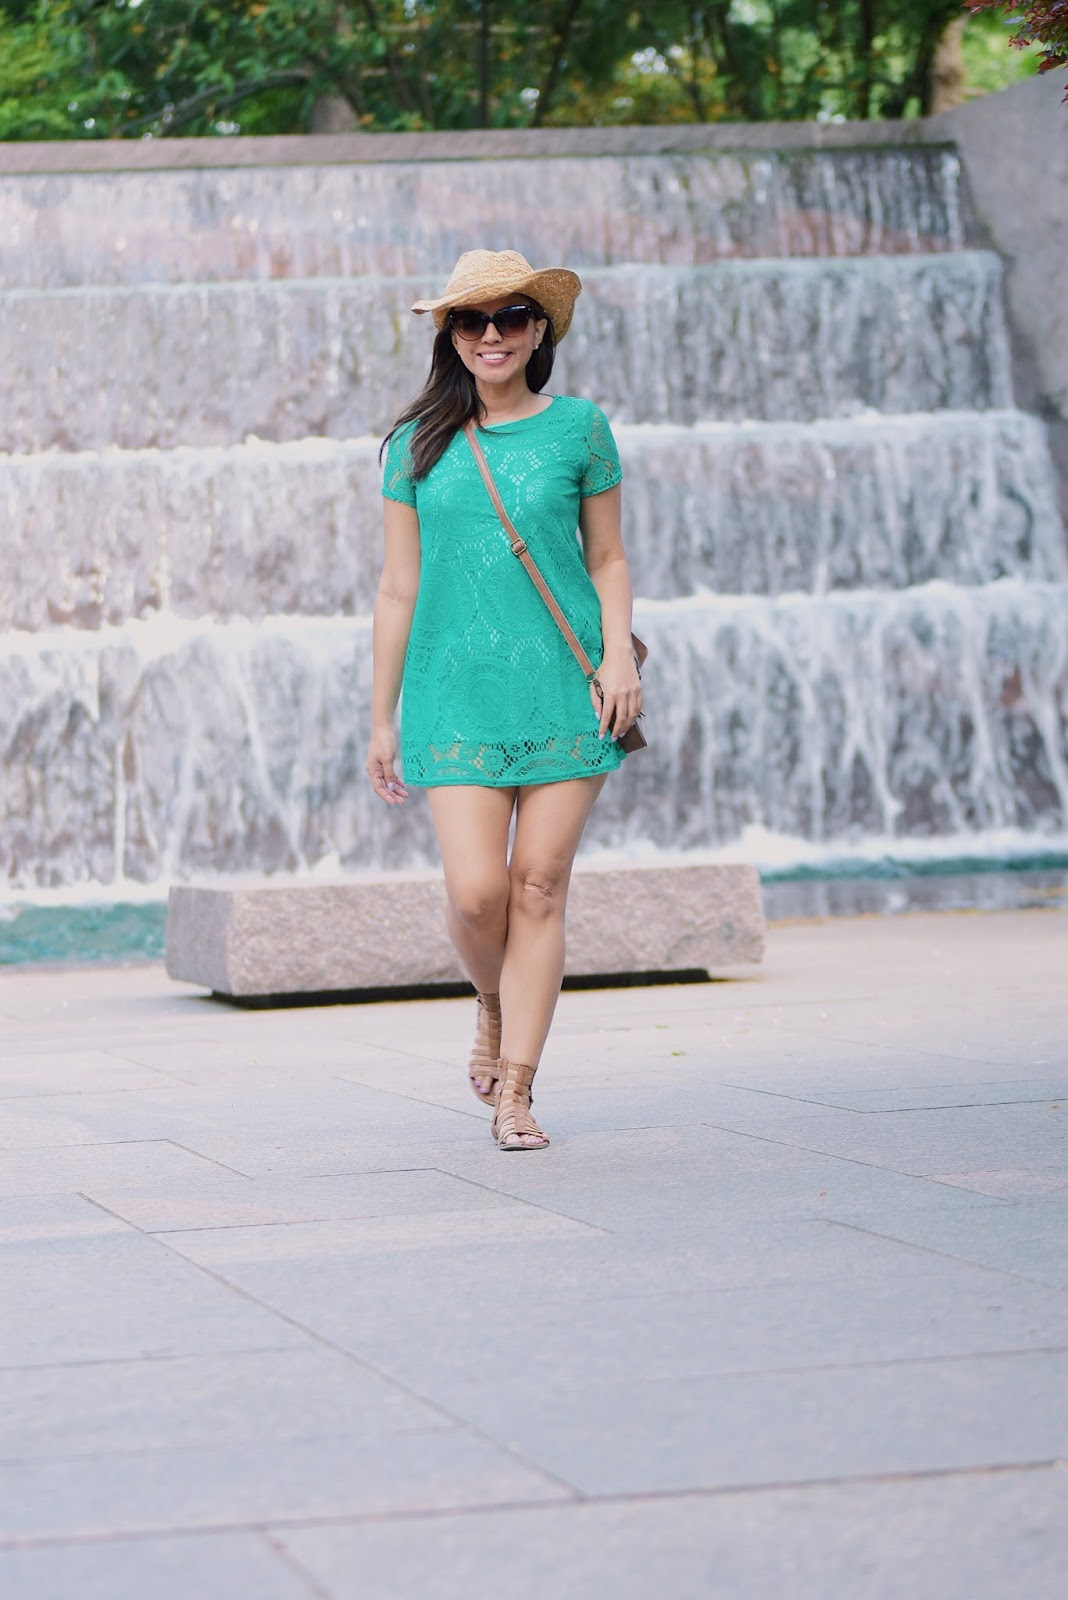 Green Lace Dress by Mari Estilo Wearing: Dress: LightInTheBox Sandals: Charlotte Russe Bag: Romwe